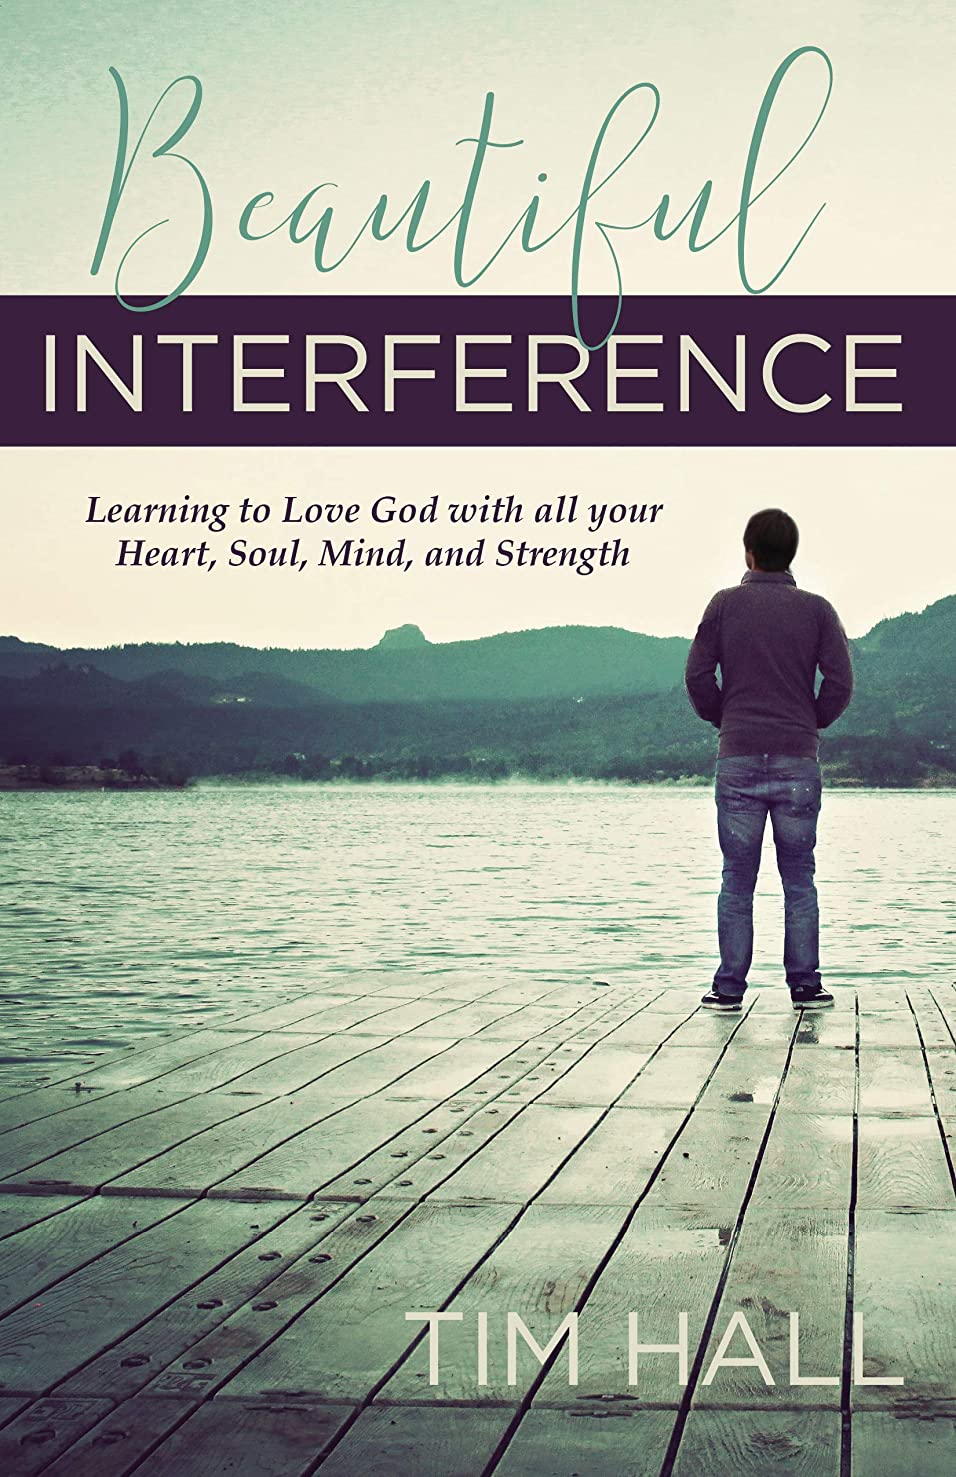 Beautiful Interference: Learning to Love God with All Your Heart, Soul, Mind, and Strength